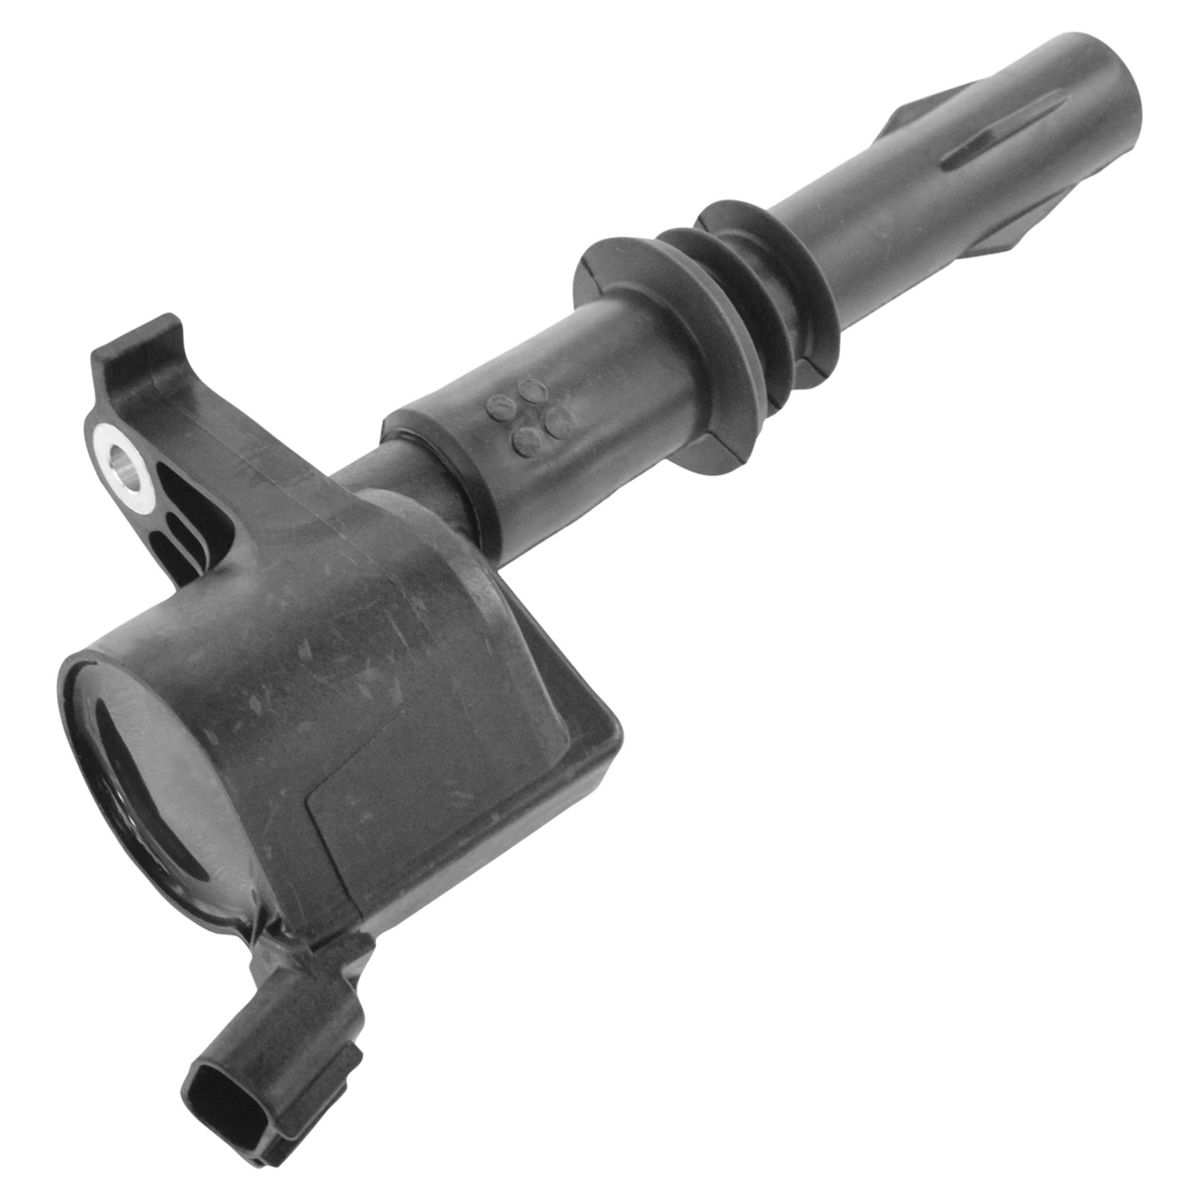 Details about Motorcraft DG521 Ignition Coil Pack for Ford Lincoln Mercury  New